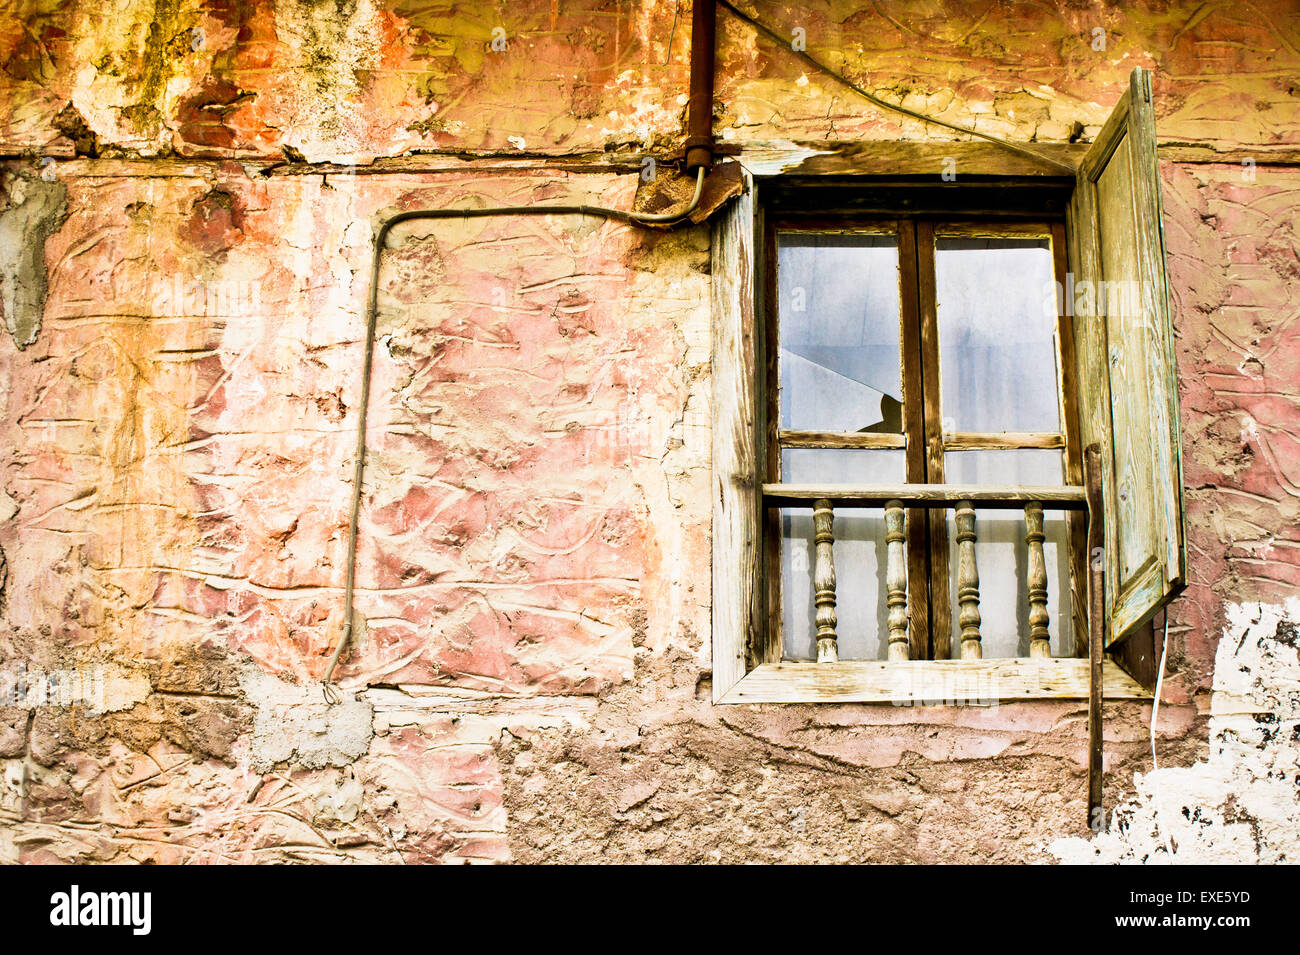 A window in an old derelict house in Turkey Stock Photo